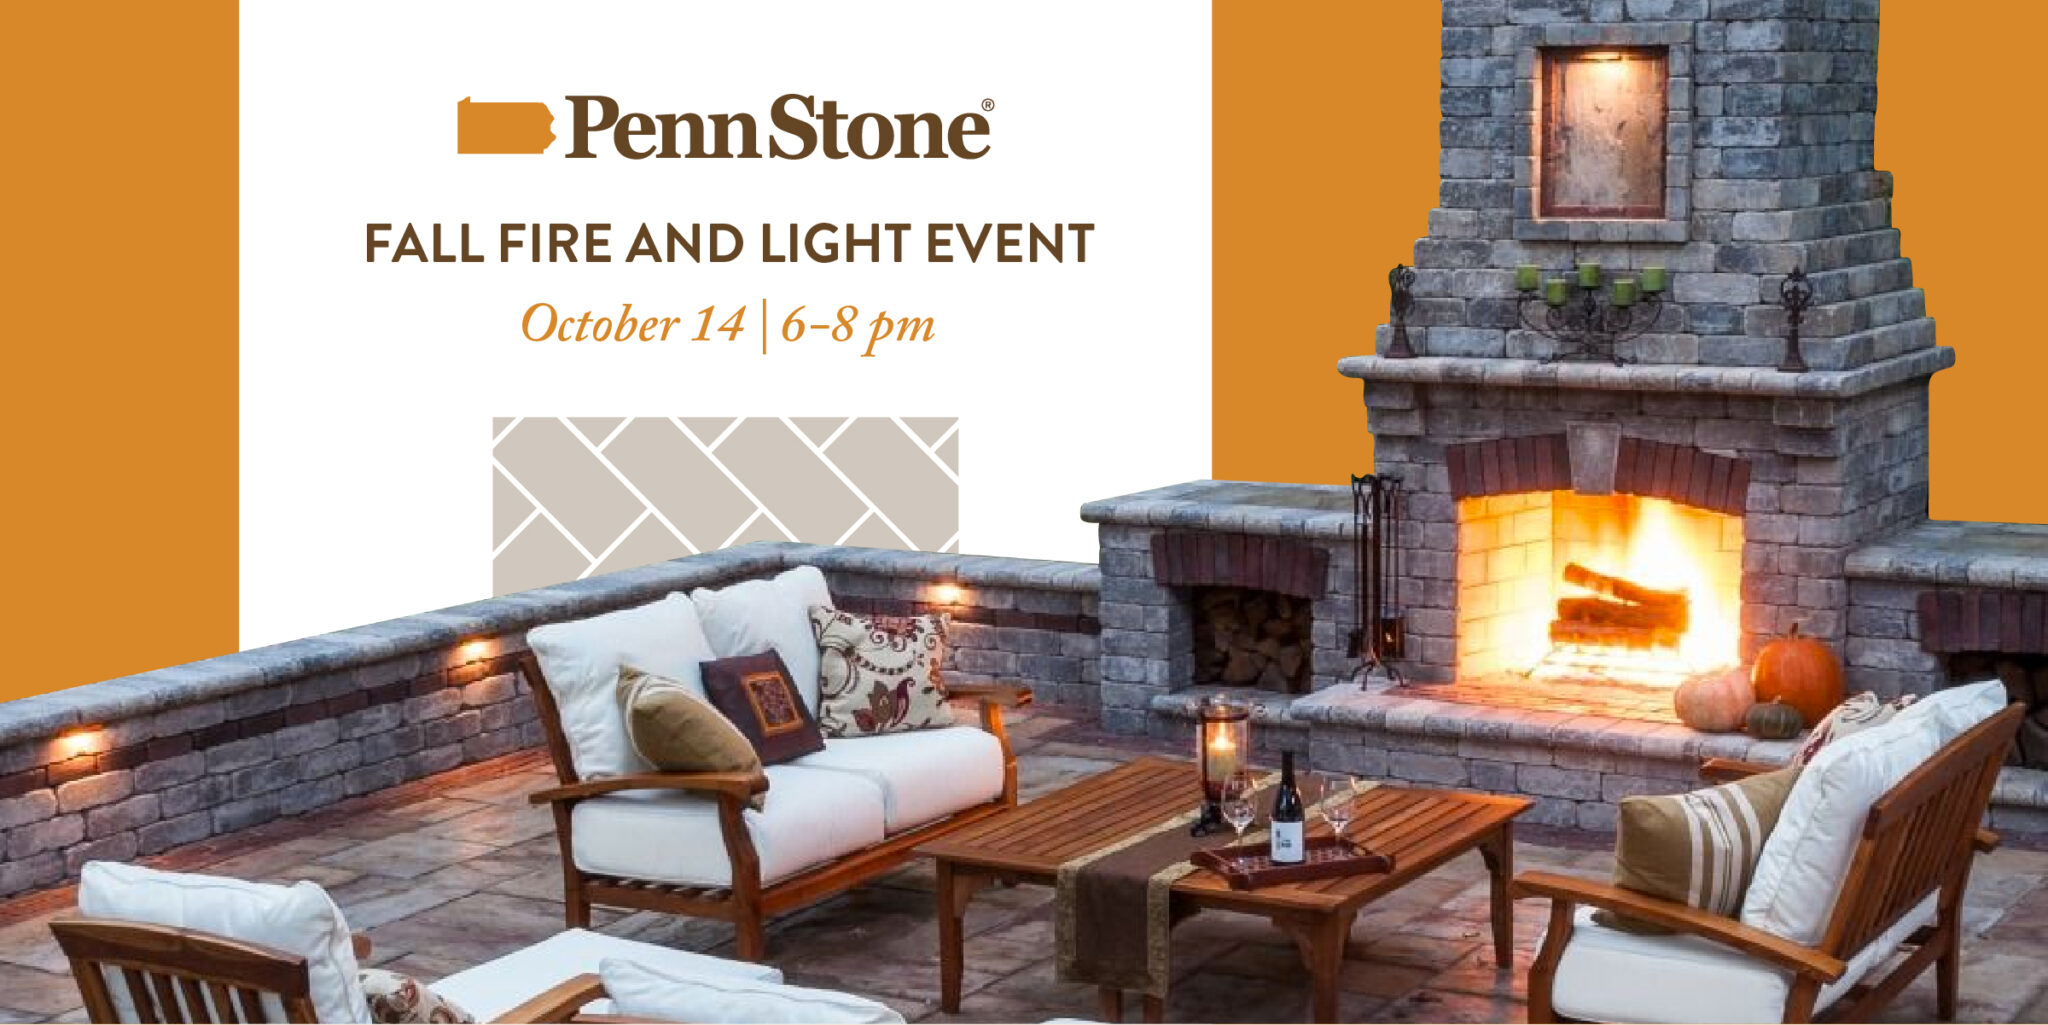 join us on thursday october 14 for a reception showcasing our collection of fire pits, outdoor fireplaces, pizza ovens and landscape lighting